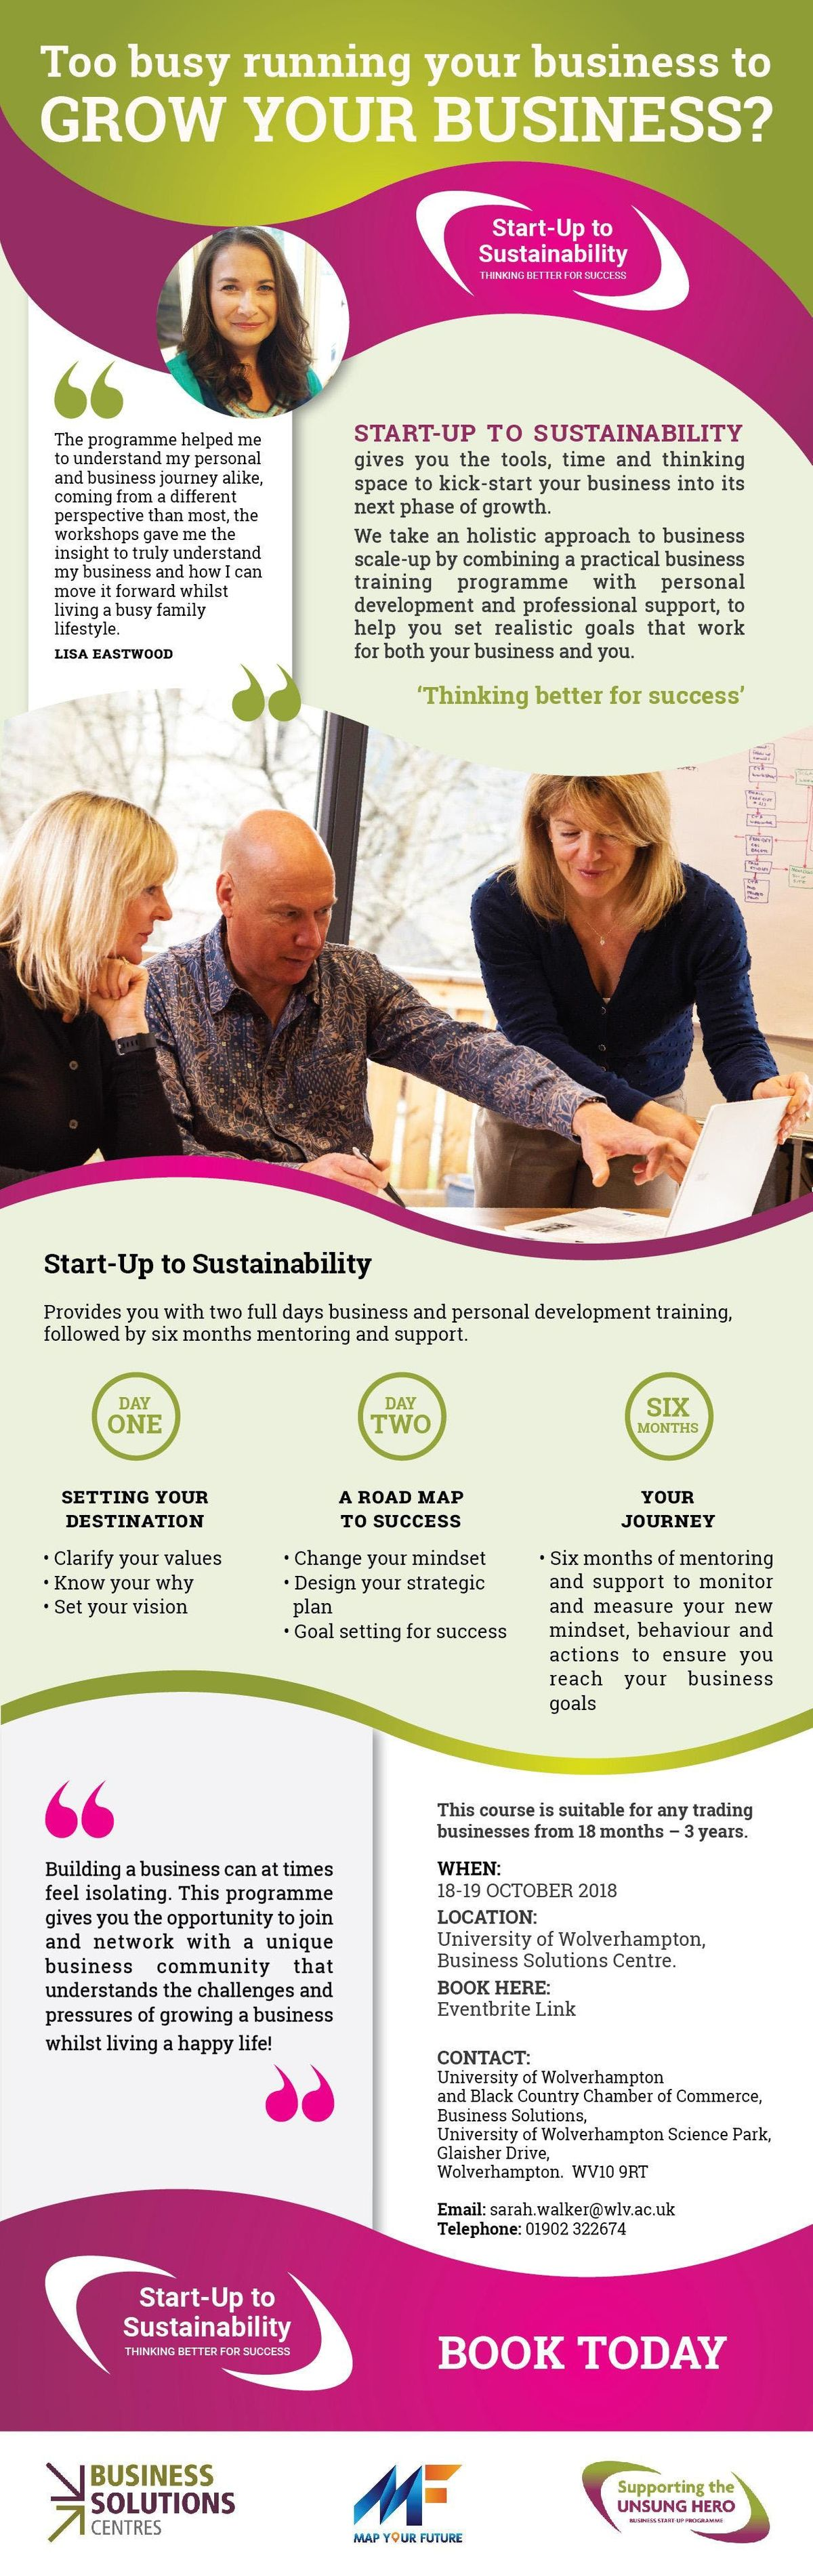 Start-Up to Sustainability - Thinking Better For Success